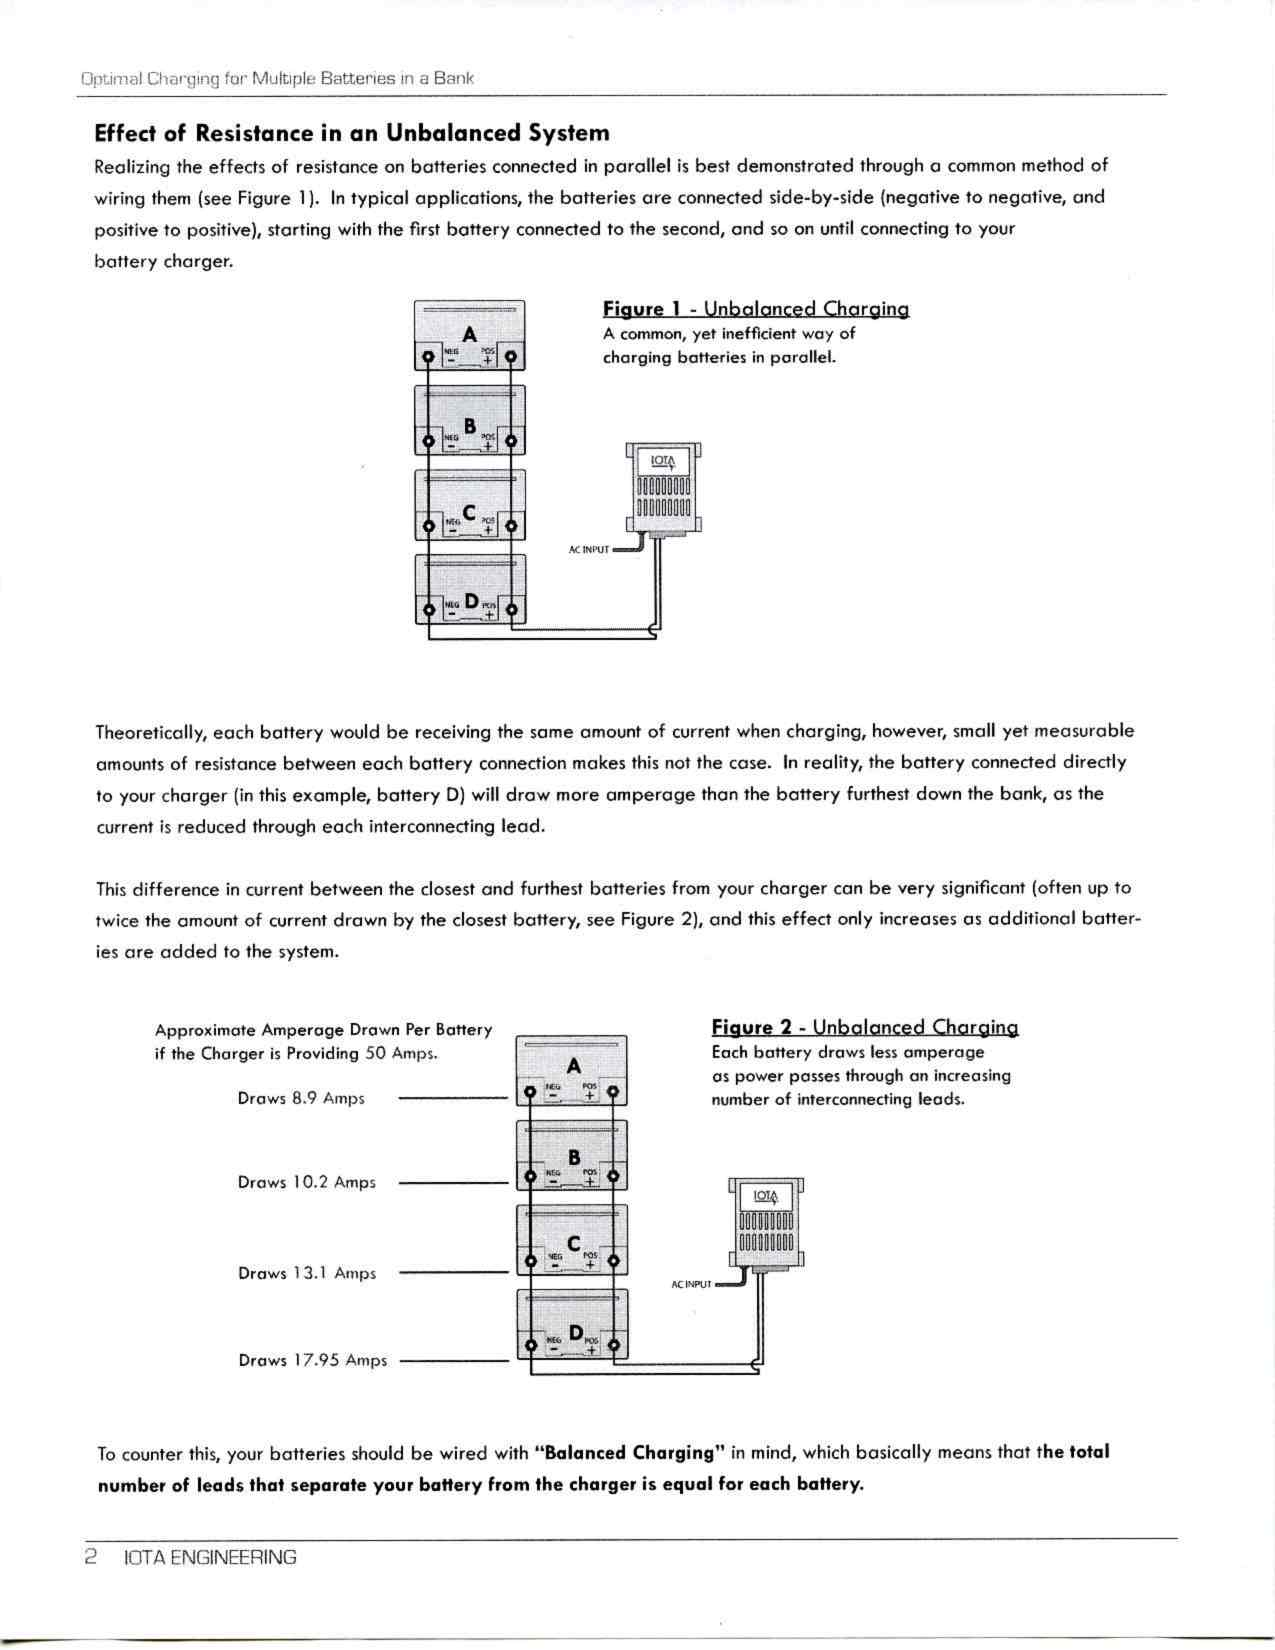 ... lithonia power sentry ps1400 wiring diagram free image ...